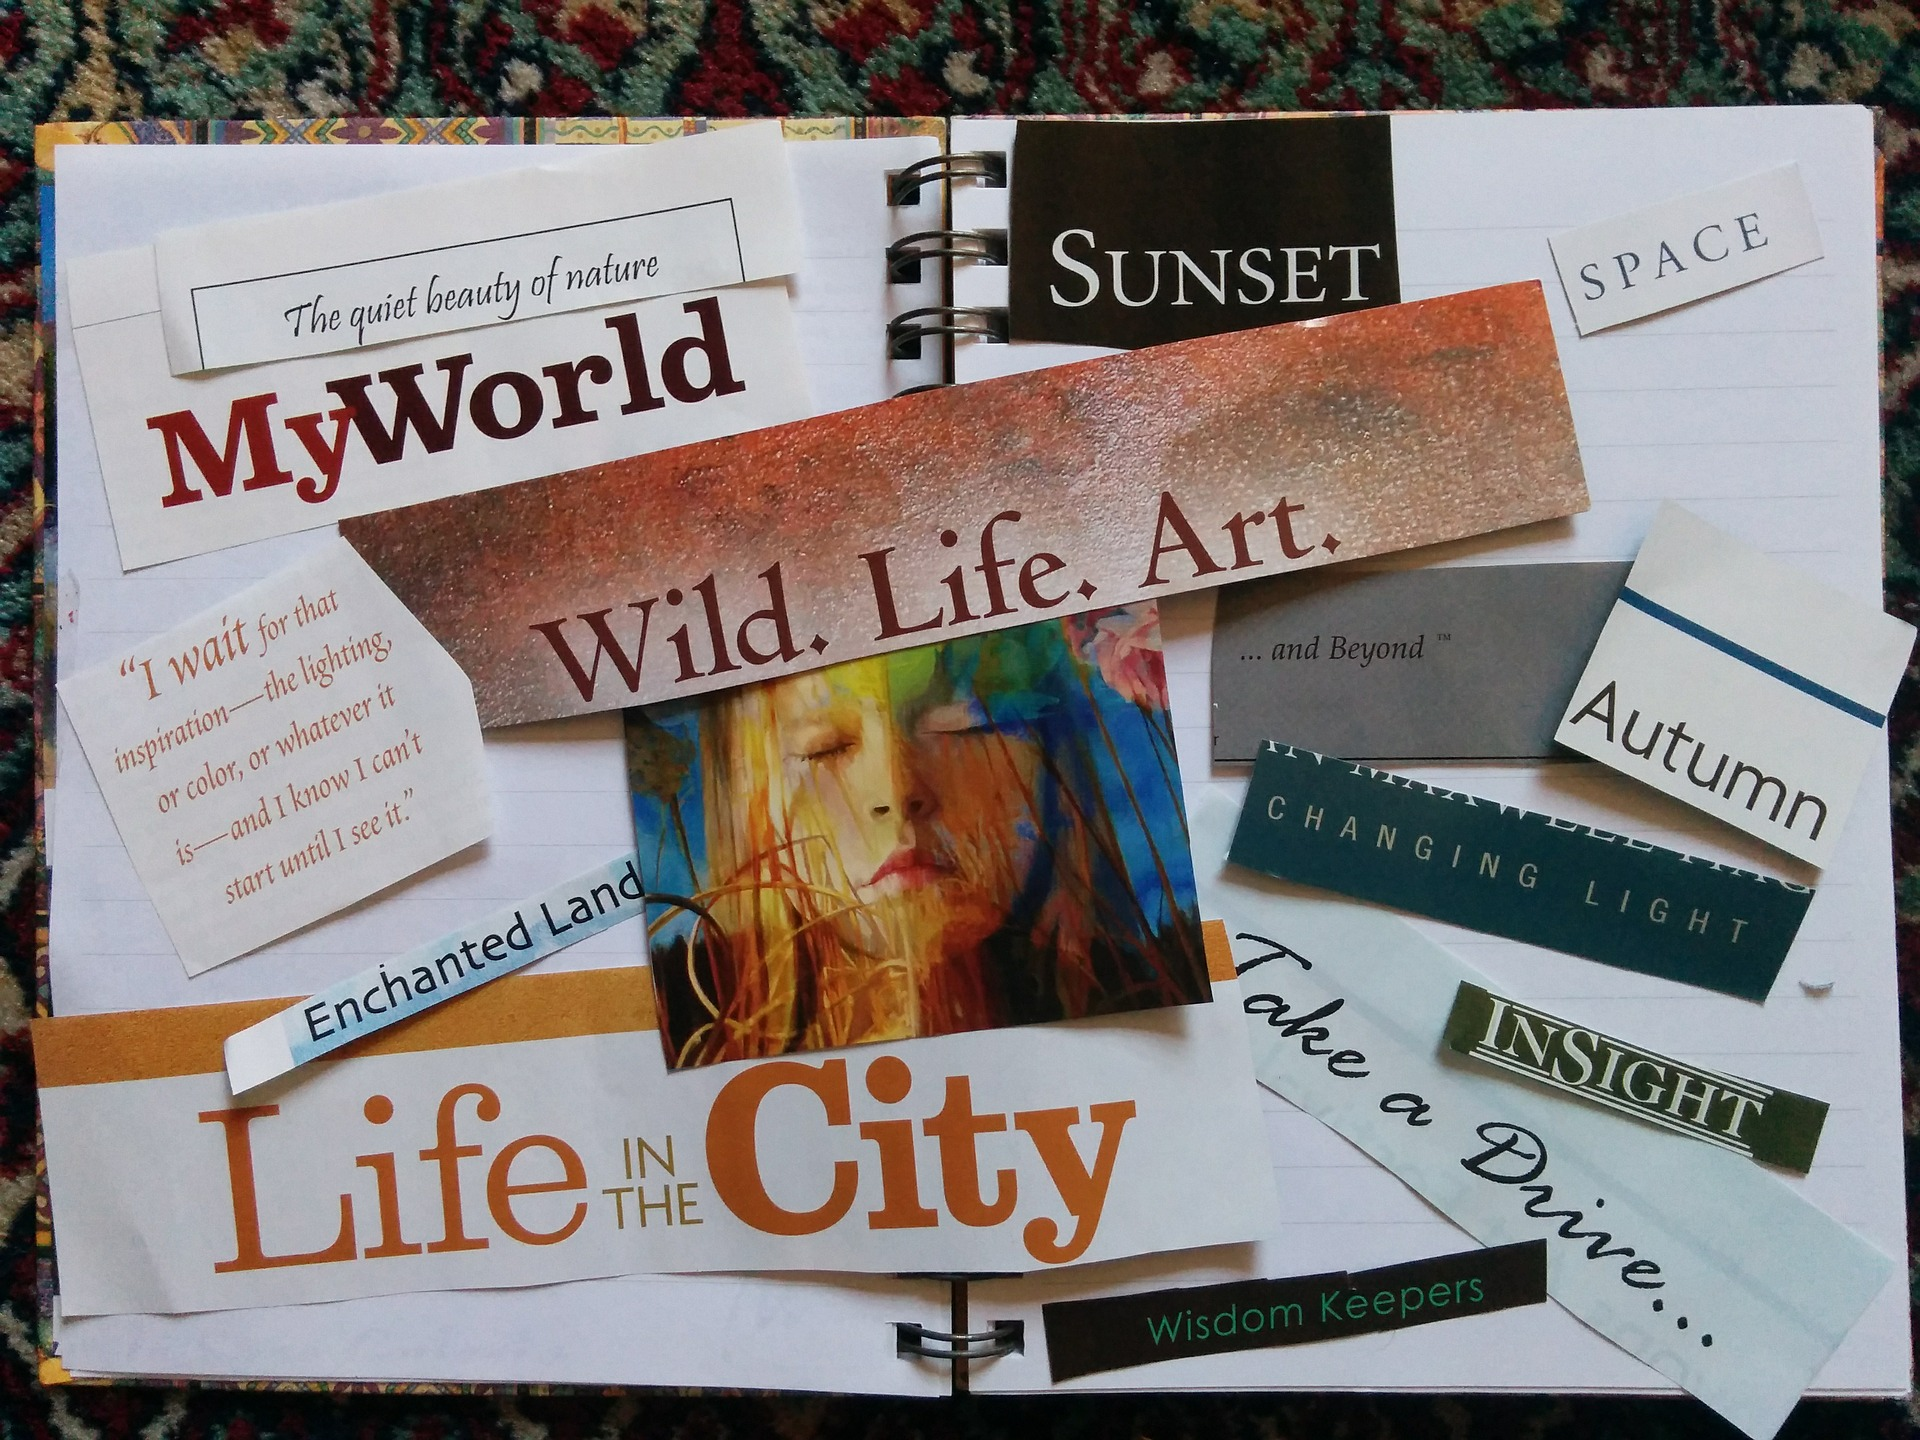 Vision board helps with planning